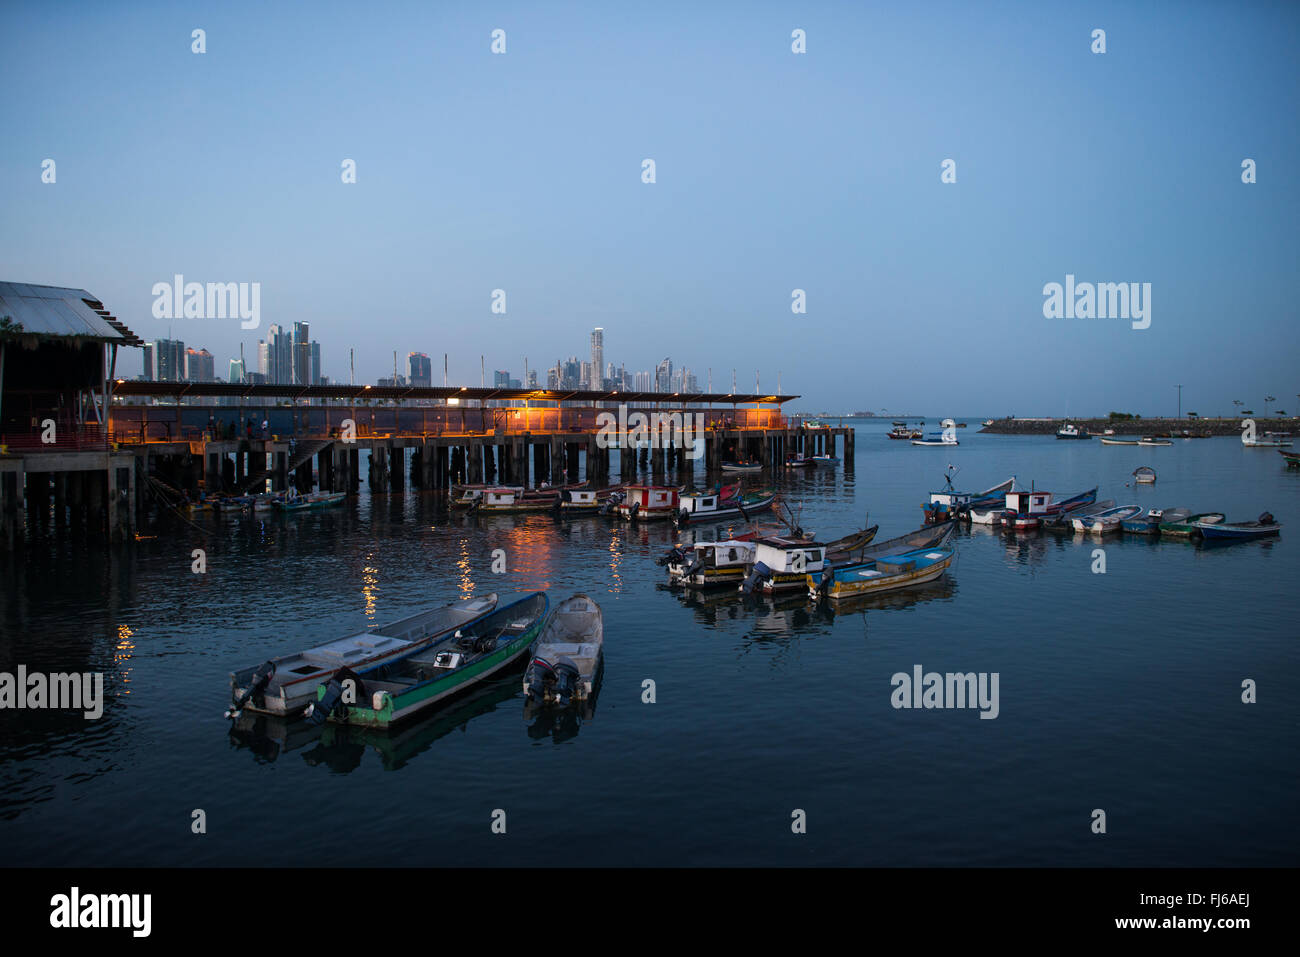 PANAMA CITY, Panama--Small fishing boats anchored in a small protected harbor on the waterfront of Panama City, - Stock Image